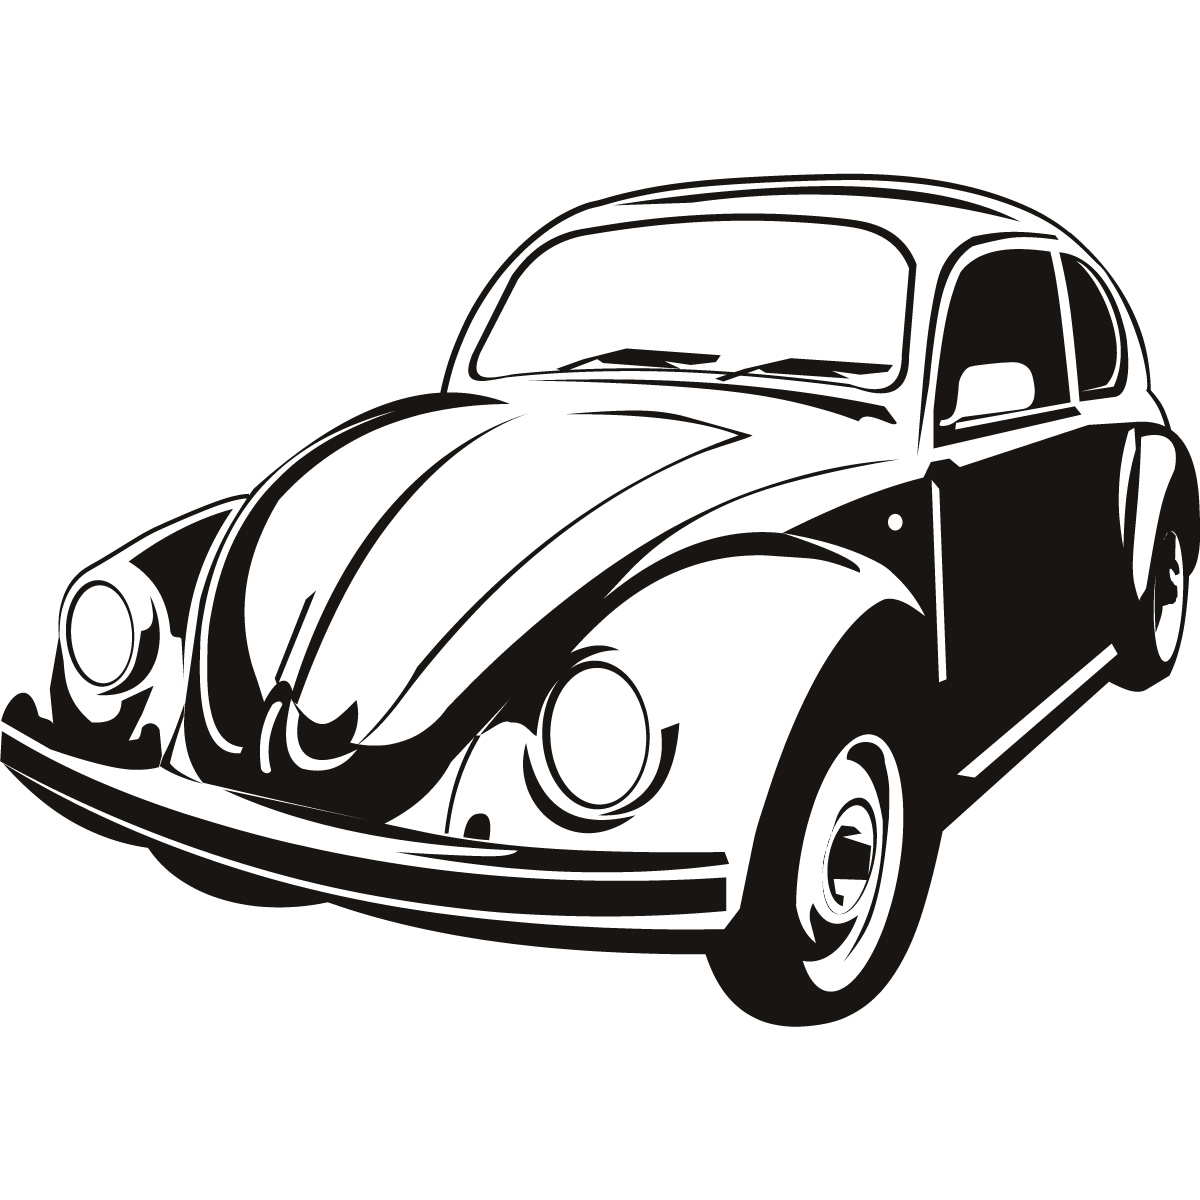 Free volkswagen cliparts download. Clipart cars beetle